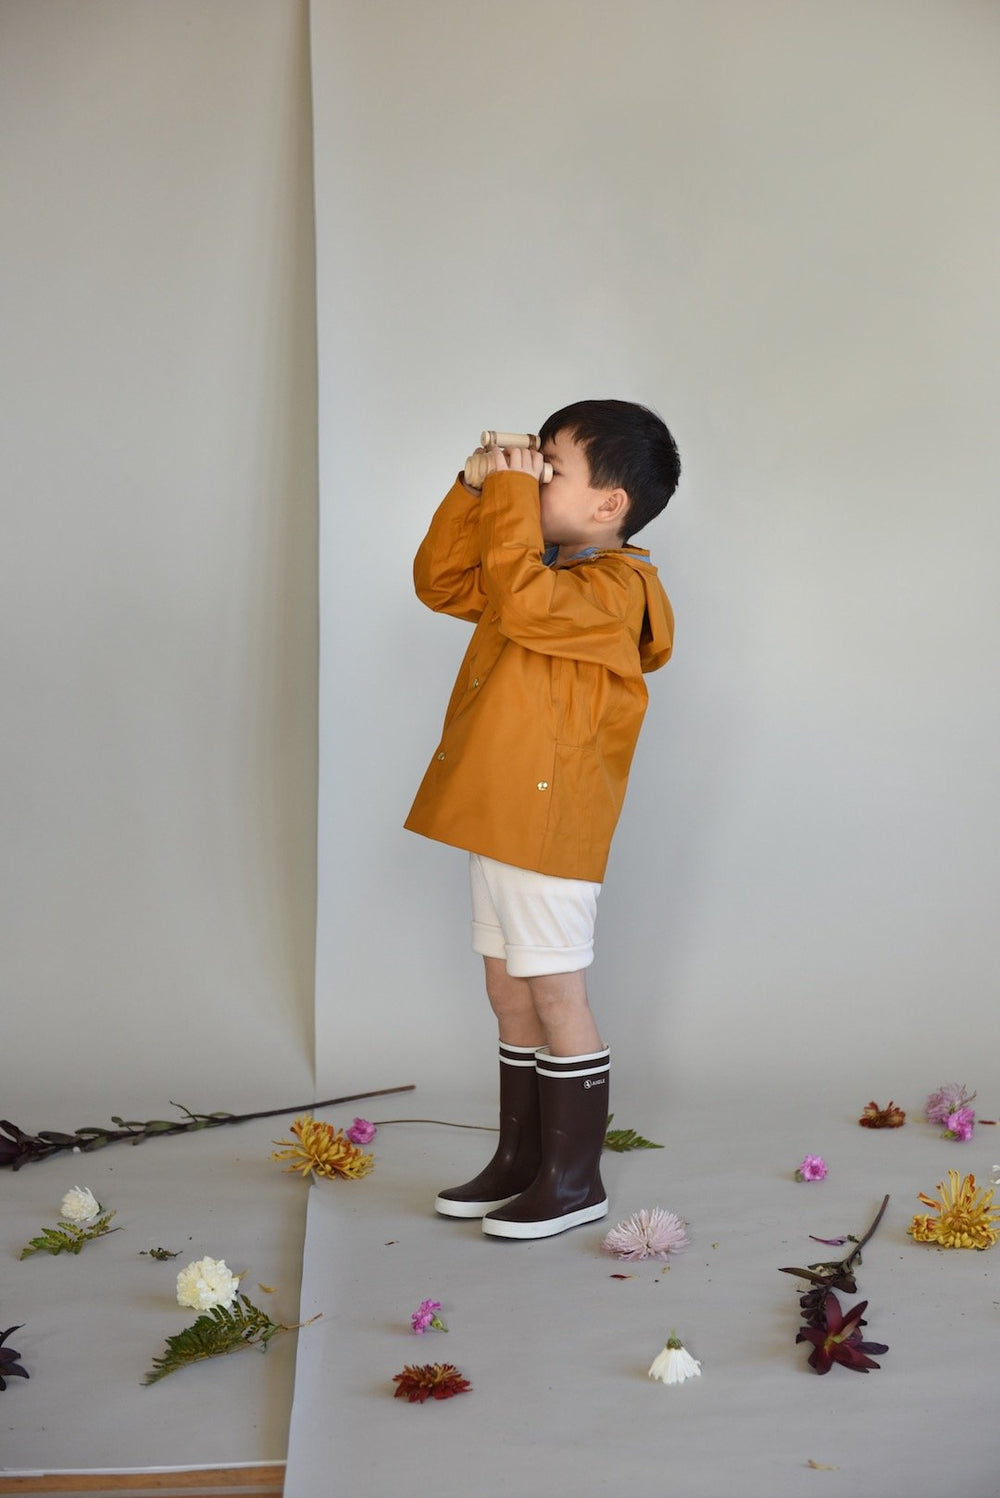 Classic Raincoat - Balsam - Pre-Order Deliver by April 15th